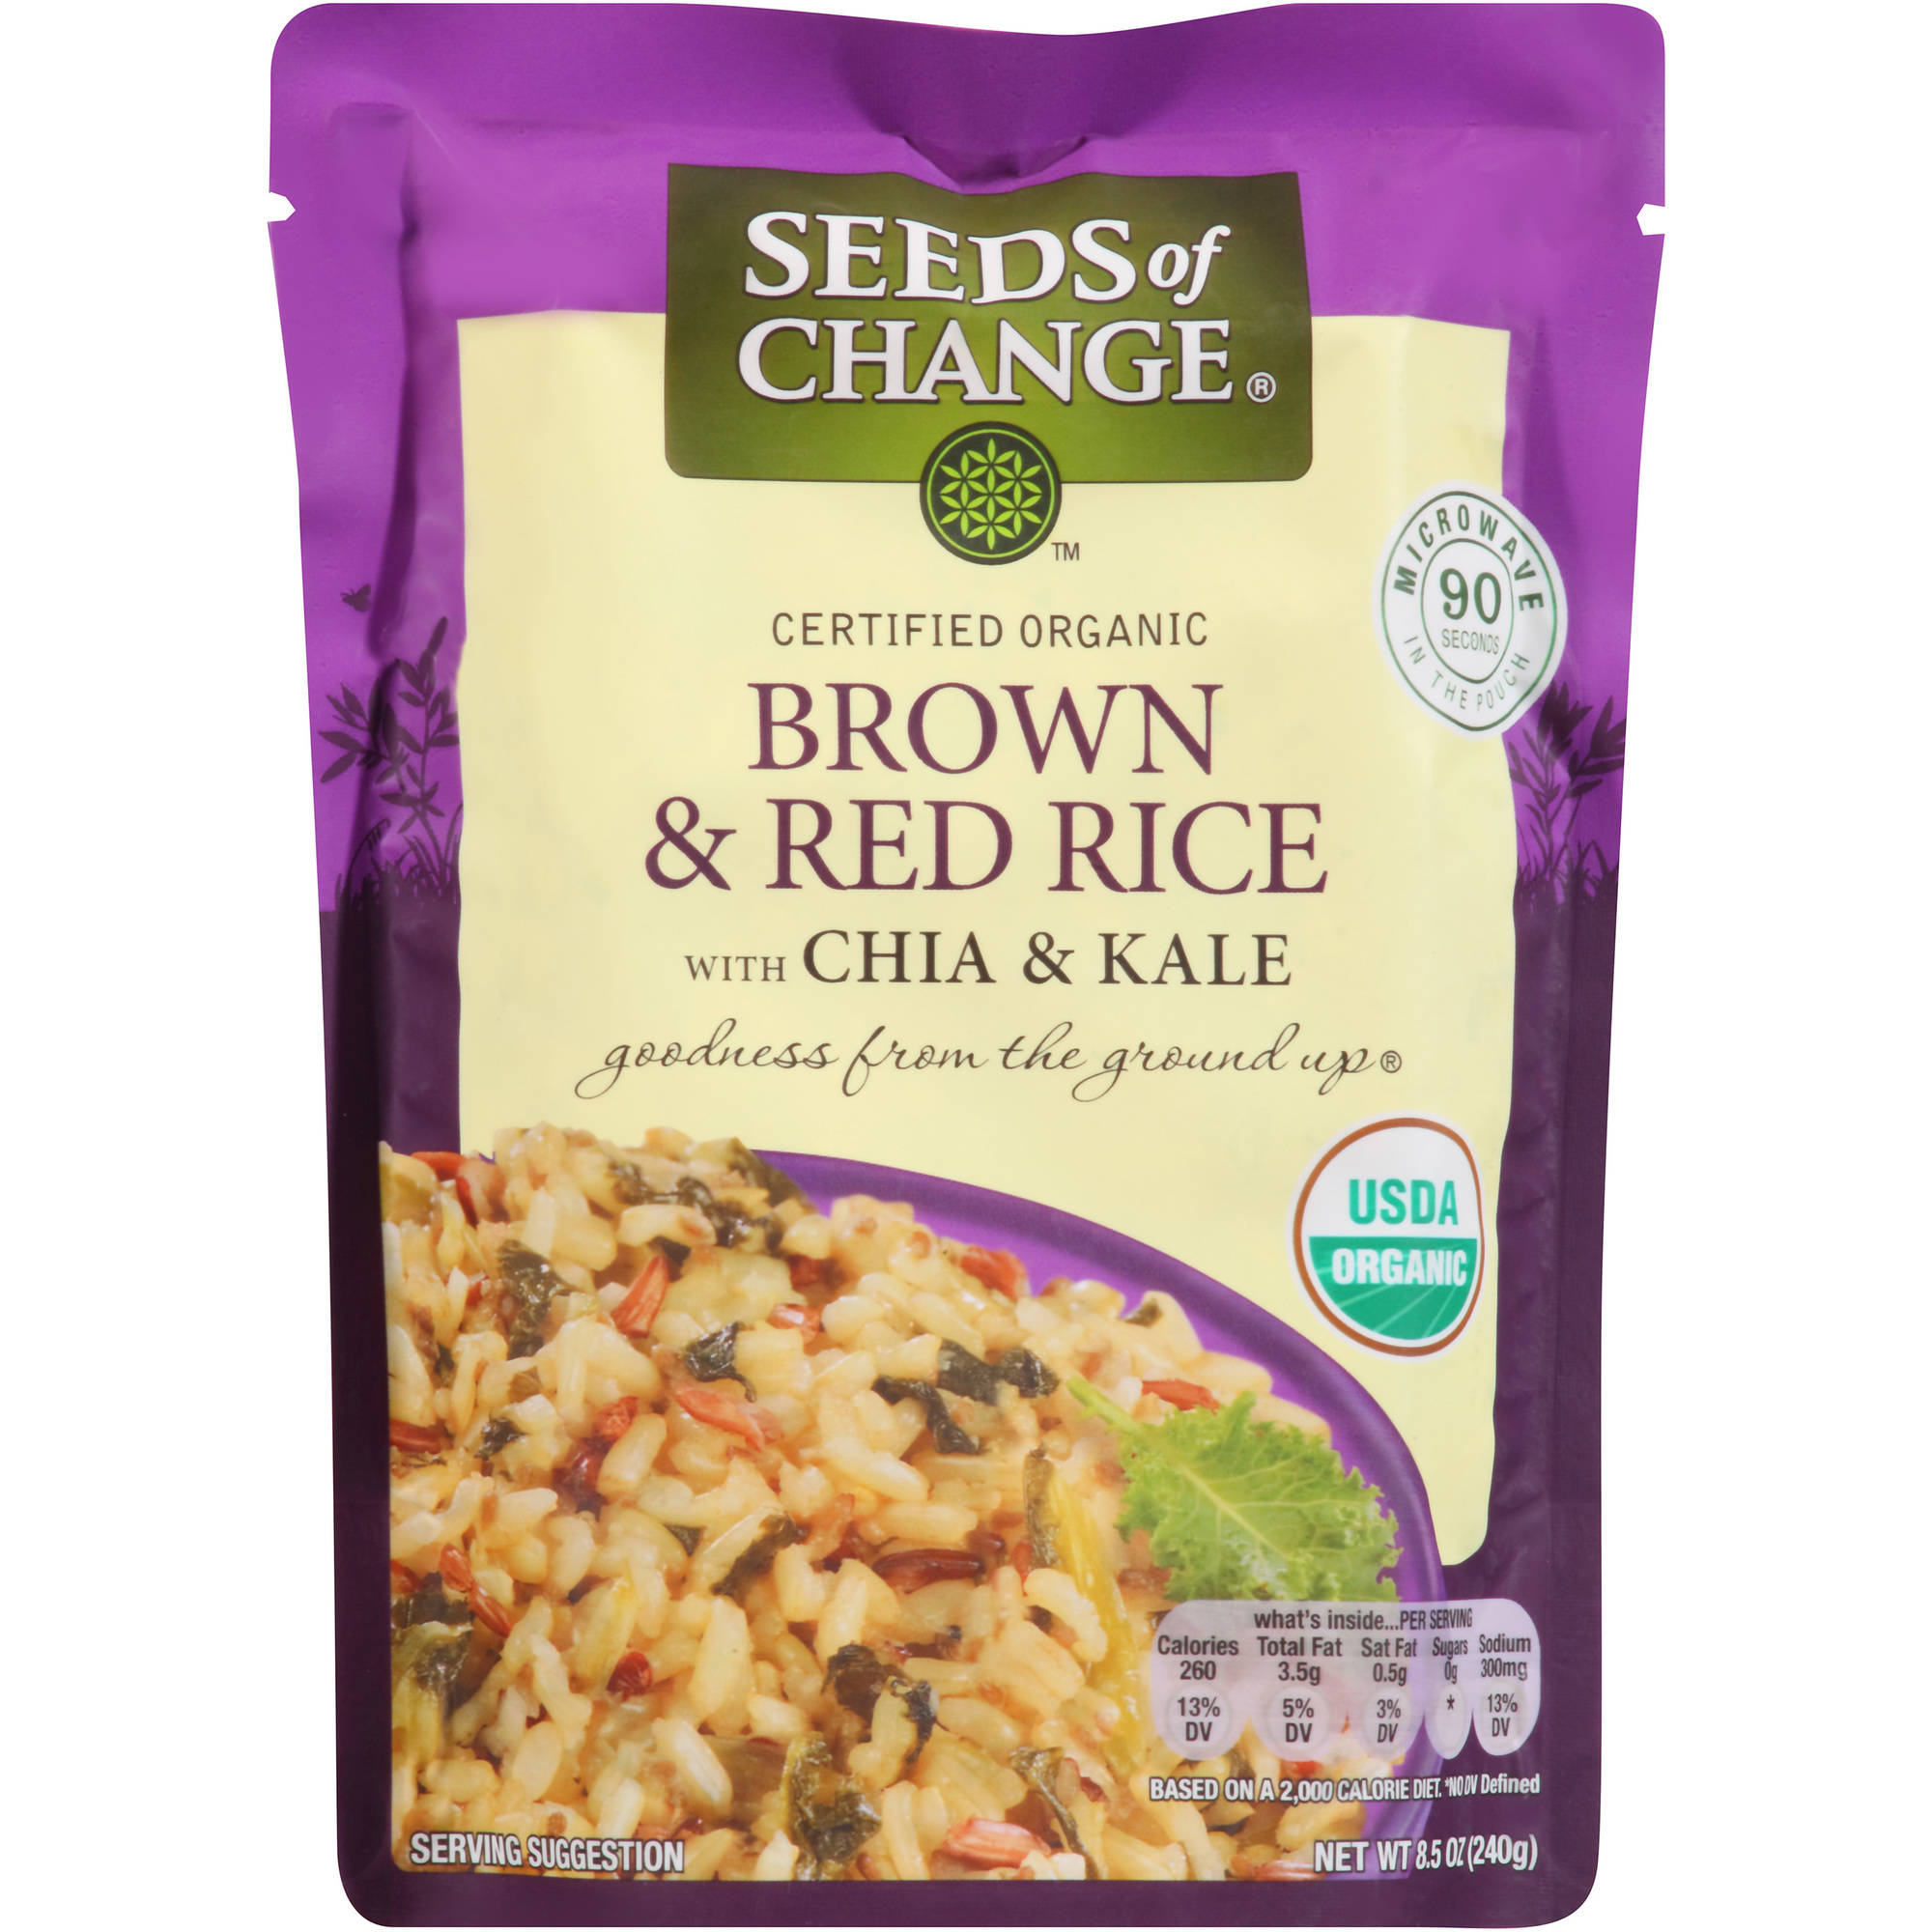 Seeds of Change Organic Brown & Red Rice with Chia and Kale, 8.5 oz